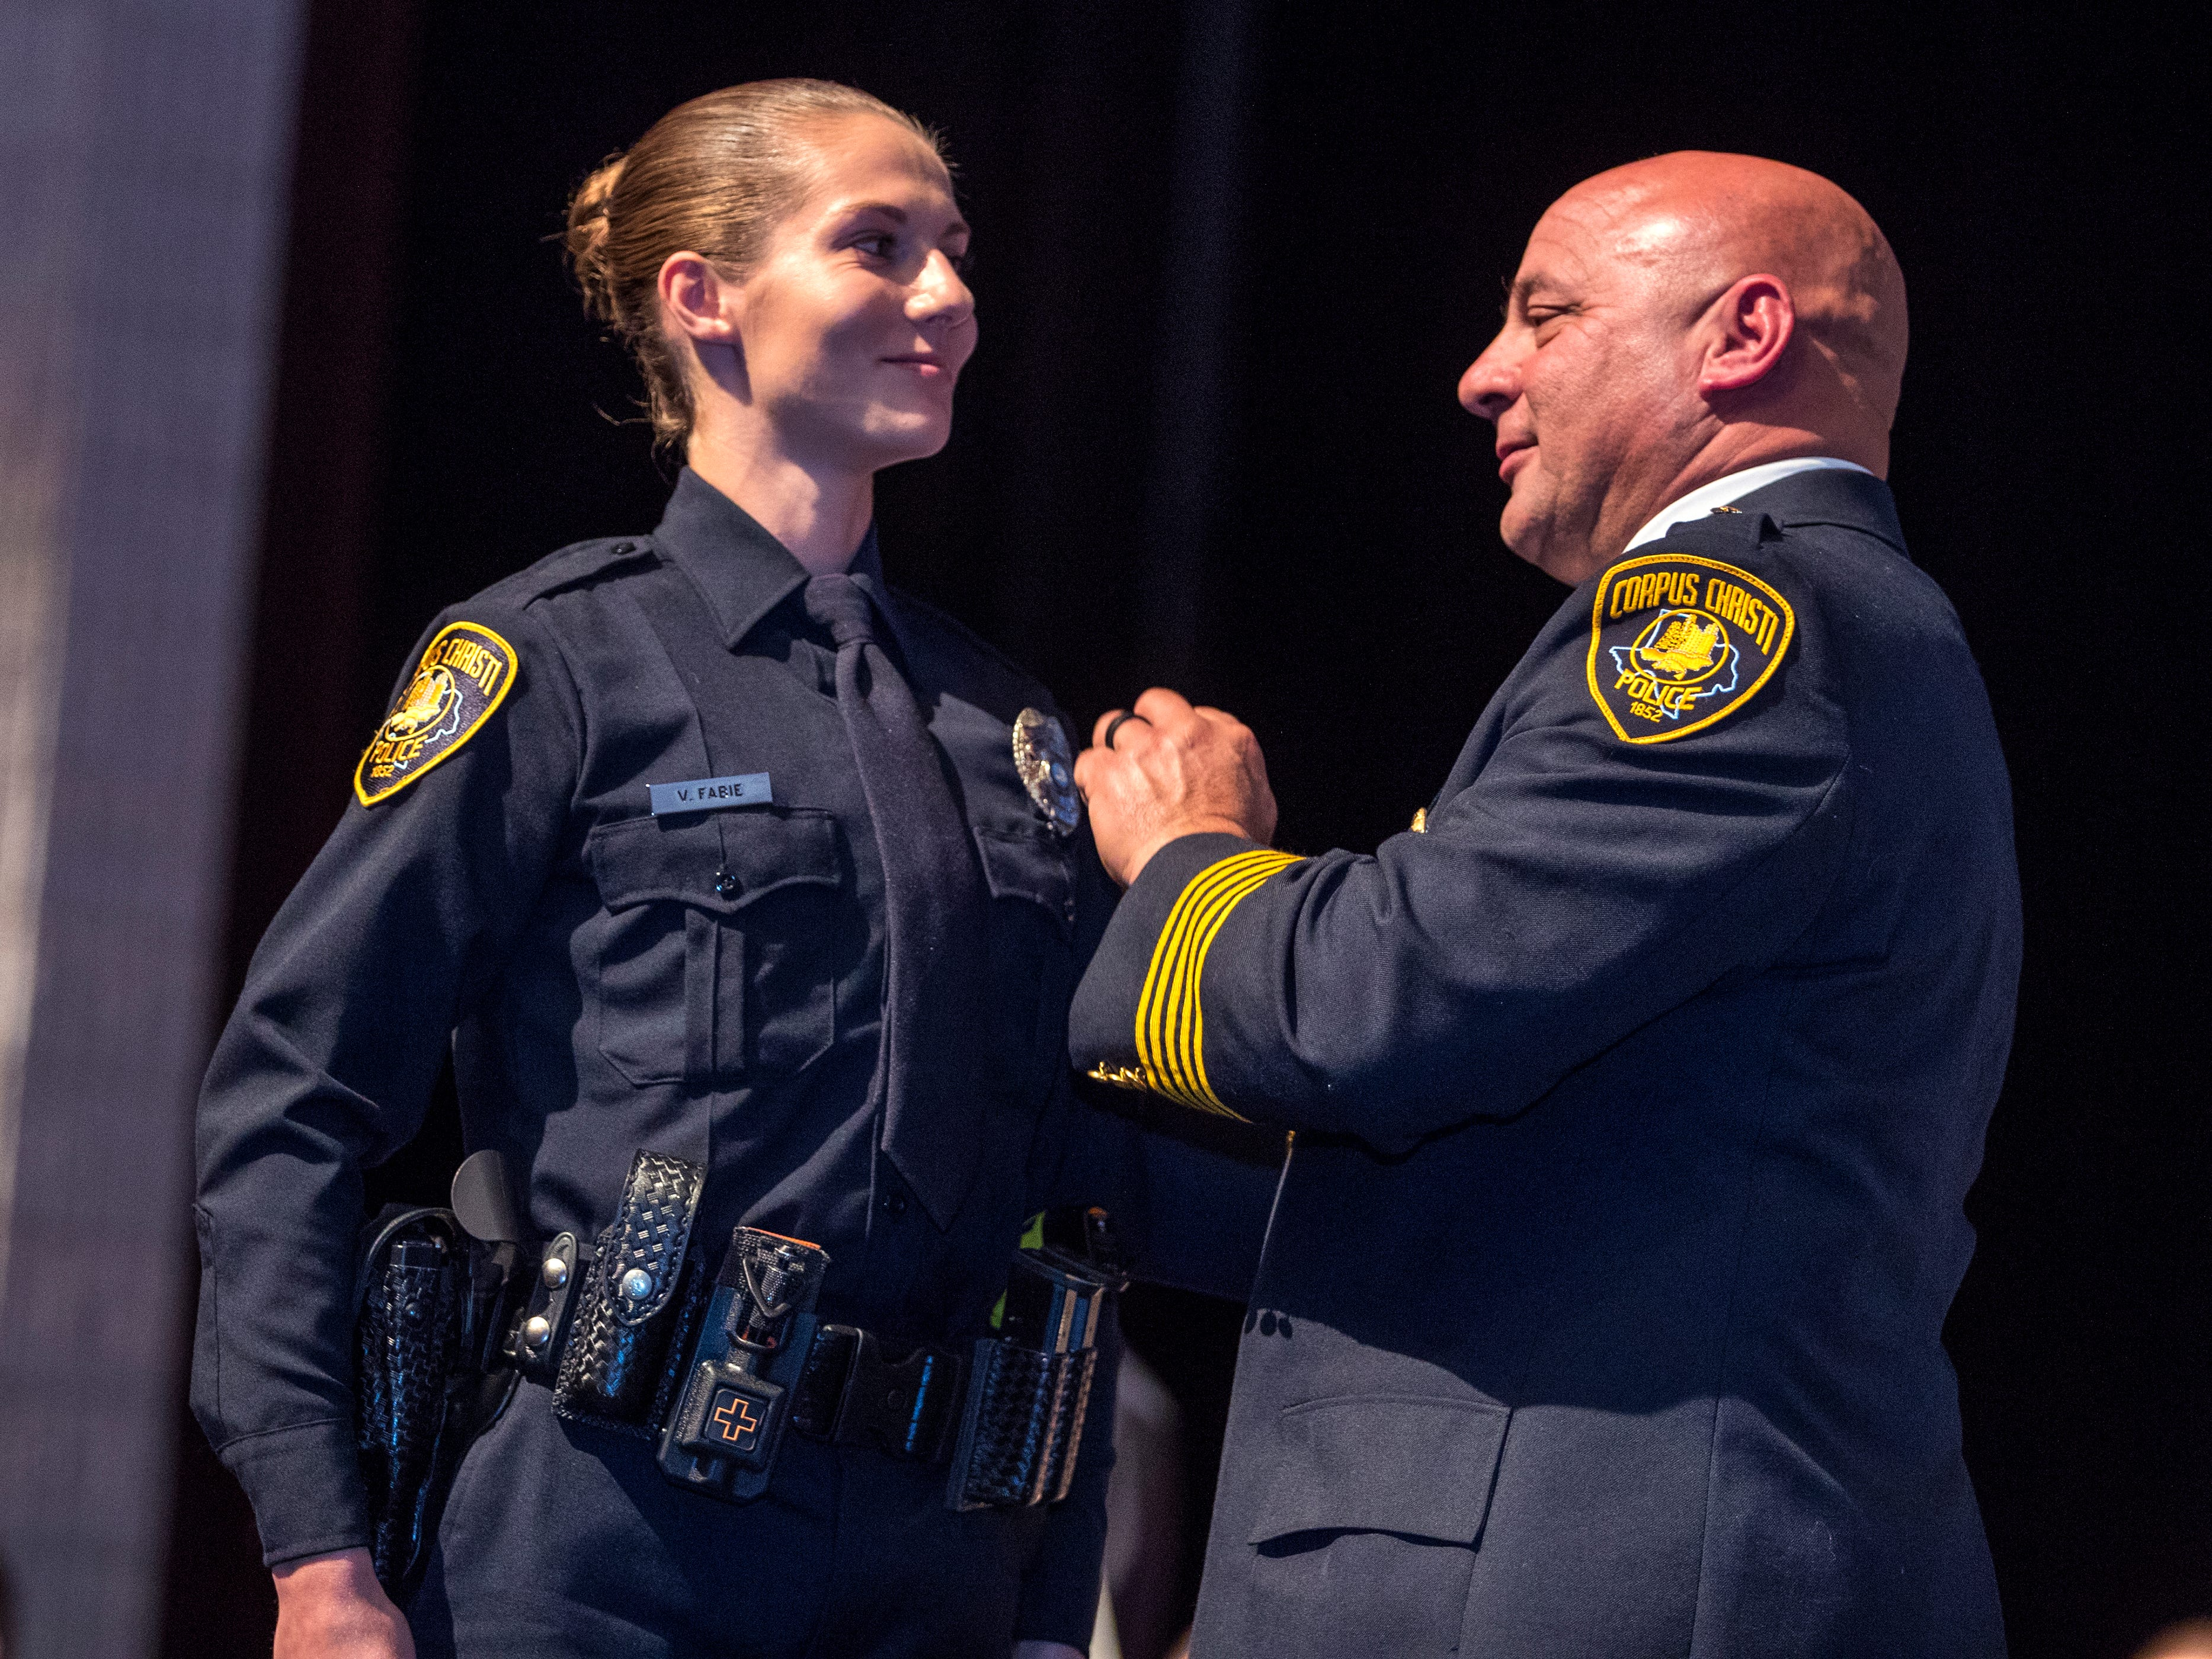 Victoria Fabie (left) receives her badge from Police Chief Mike Markle during the 77th Corpus Christi Police Department Police Academy Graduates' graduation ceremony at Selena Auditorium on Friday, February, 8, 2019.